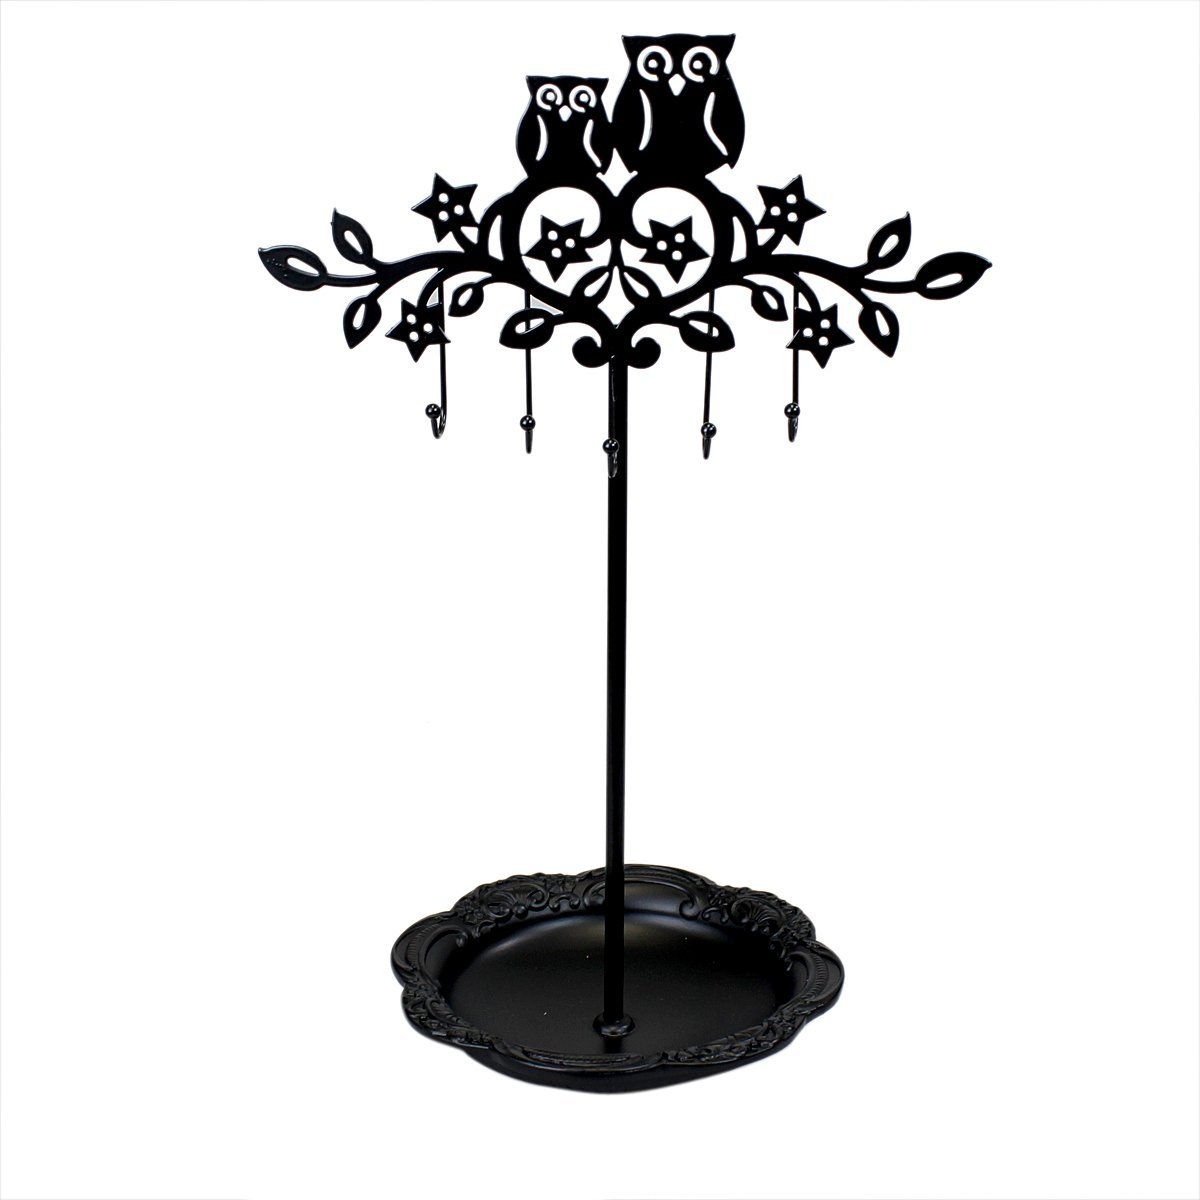 1200x1200 Cut Out Owl Tree Jewelry Stand With Tray Black